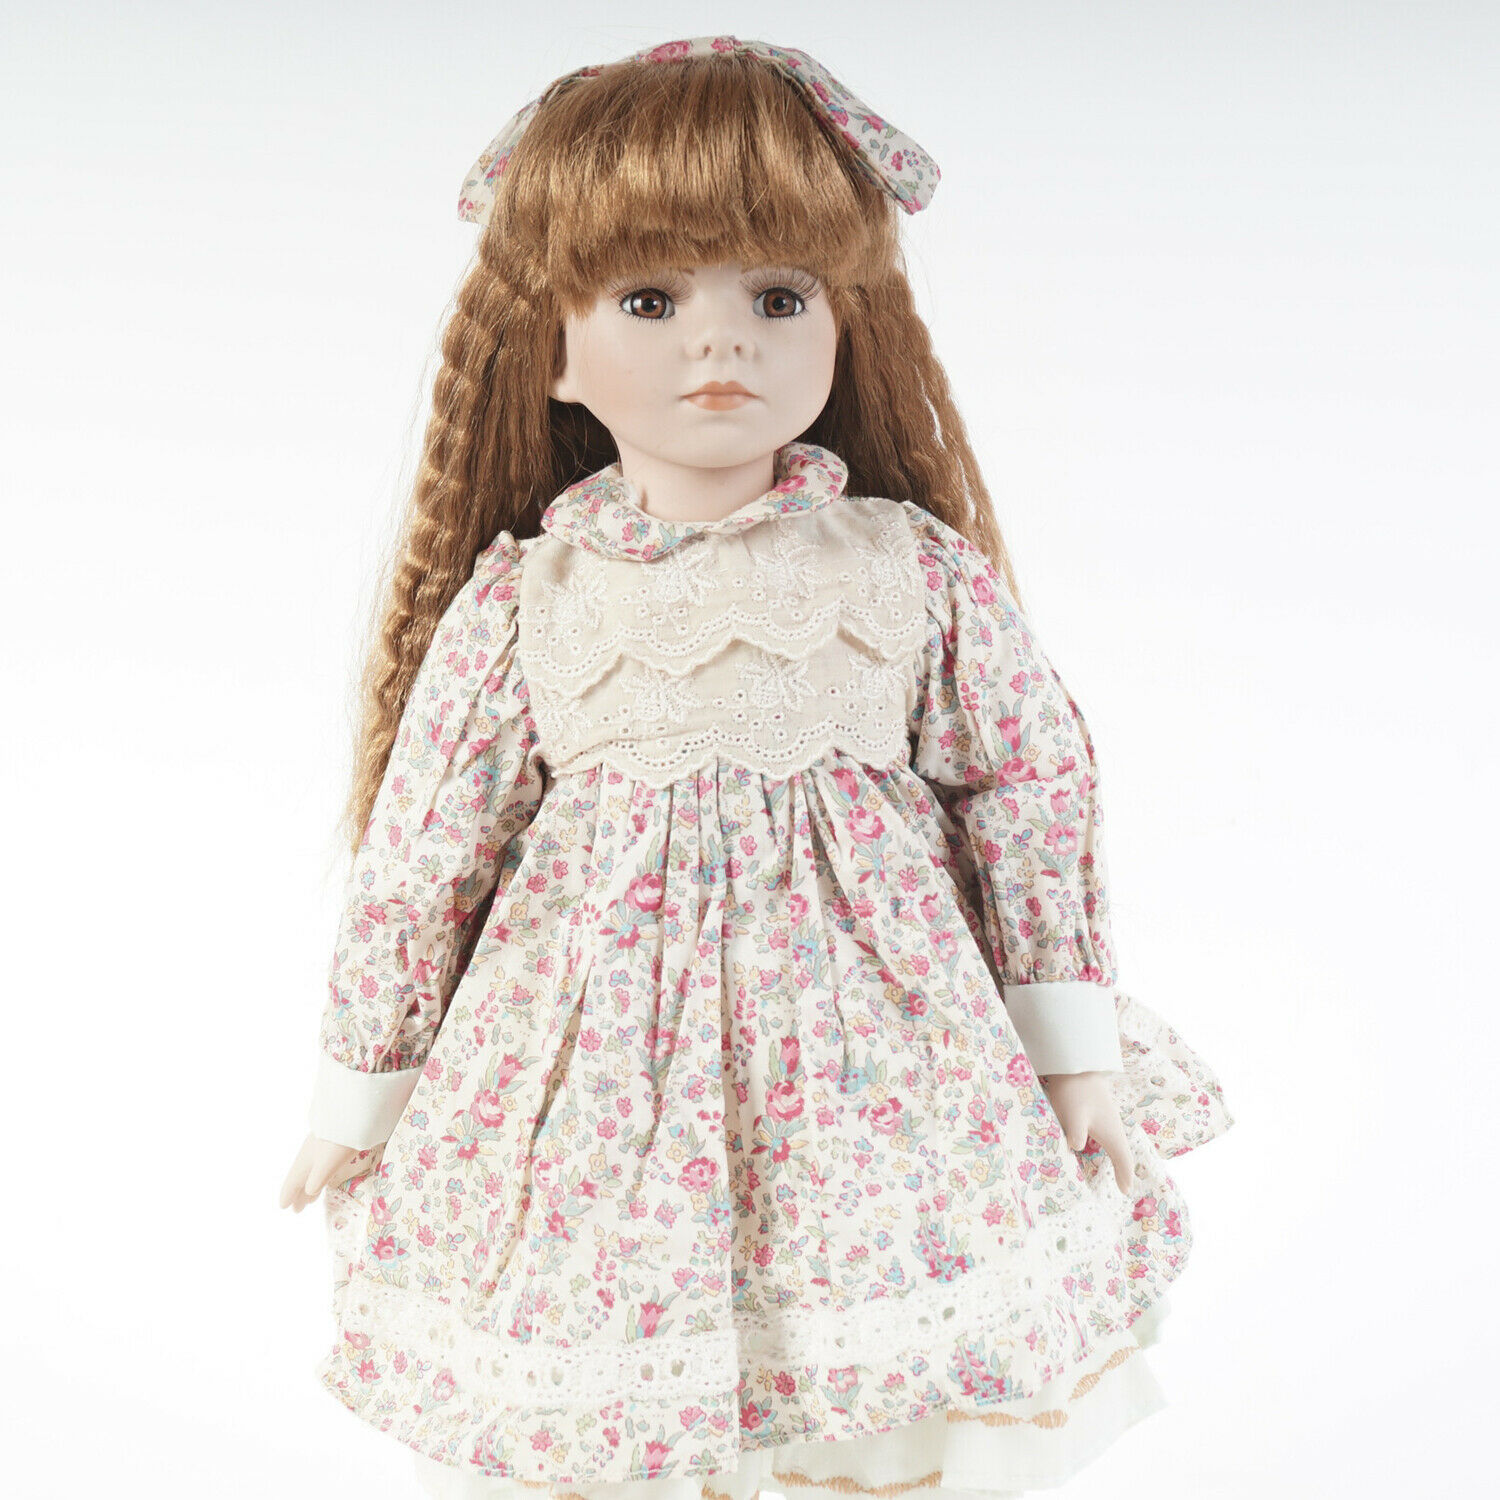 House of Lloyd Girl Doll with Free Shipping!